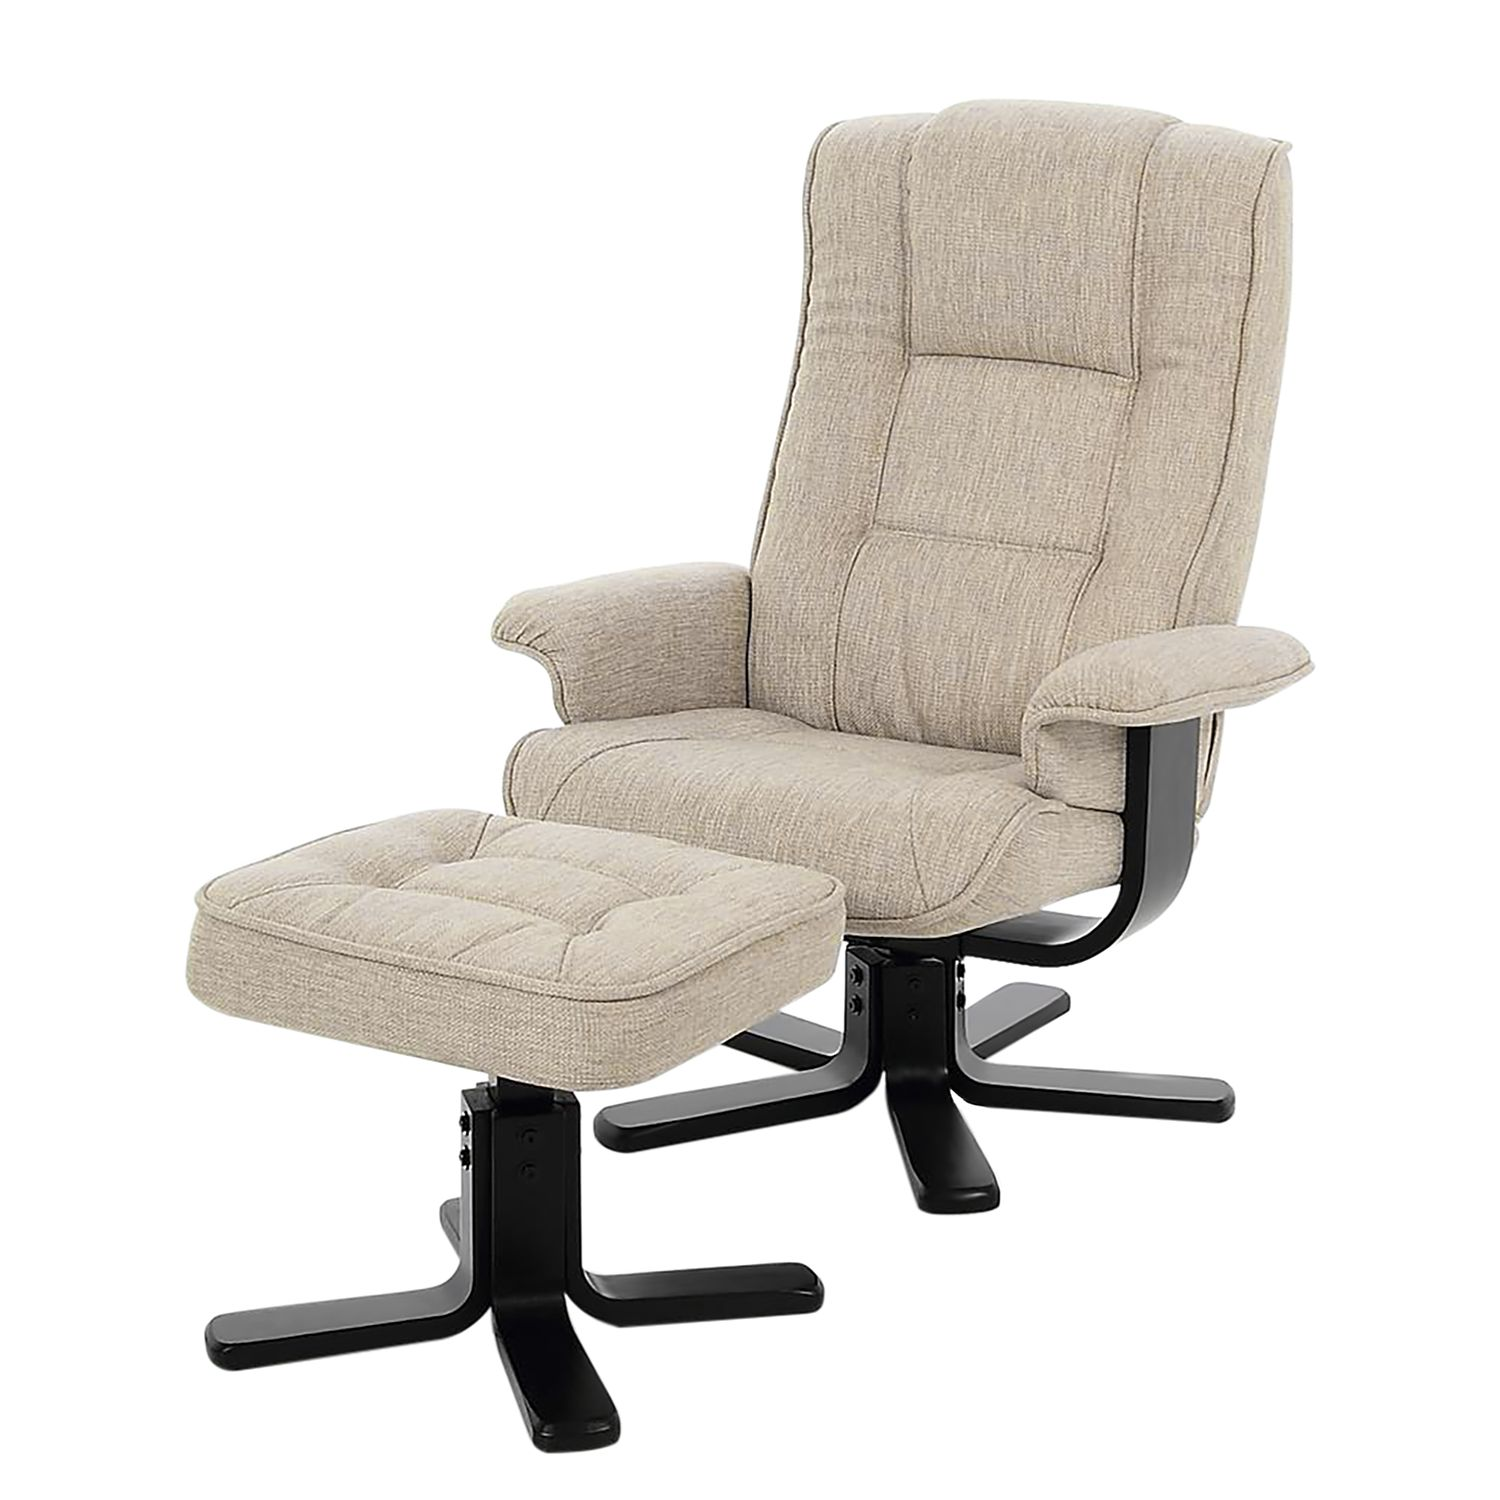 Fauteuil de relaxation Wenzo